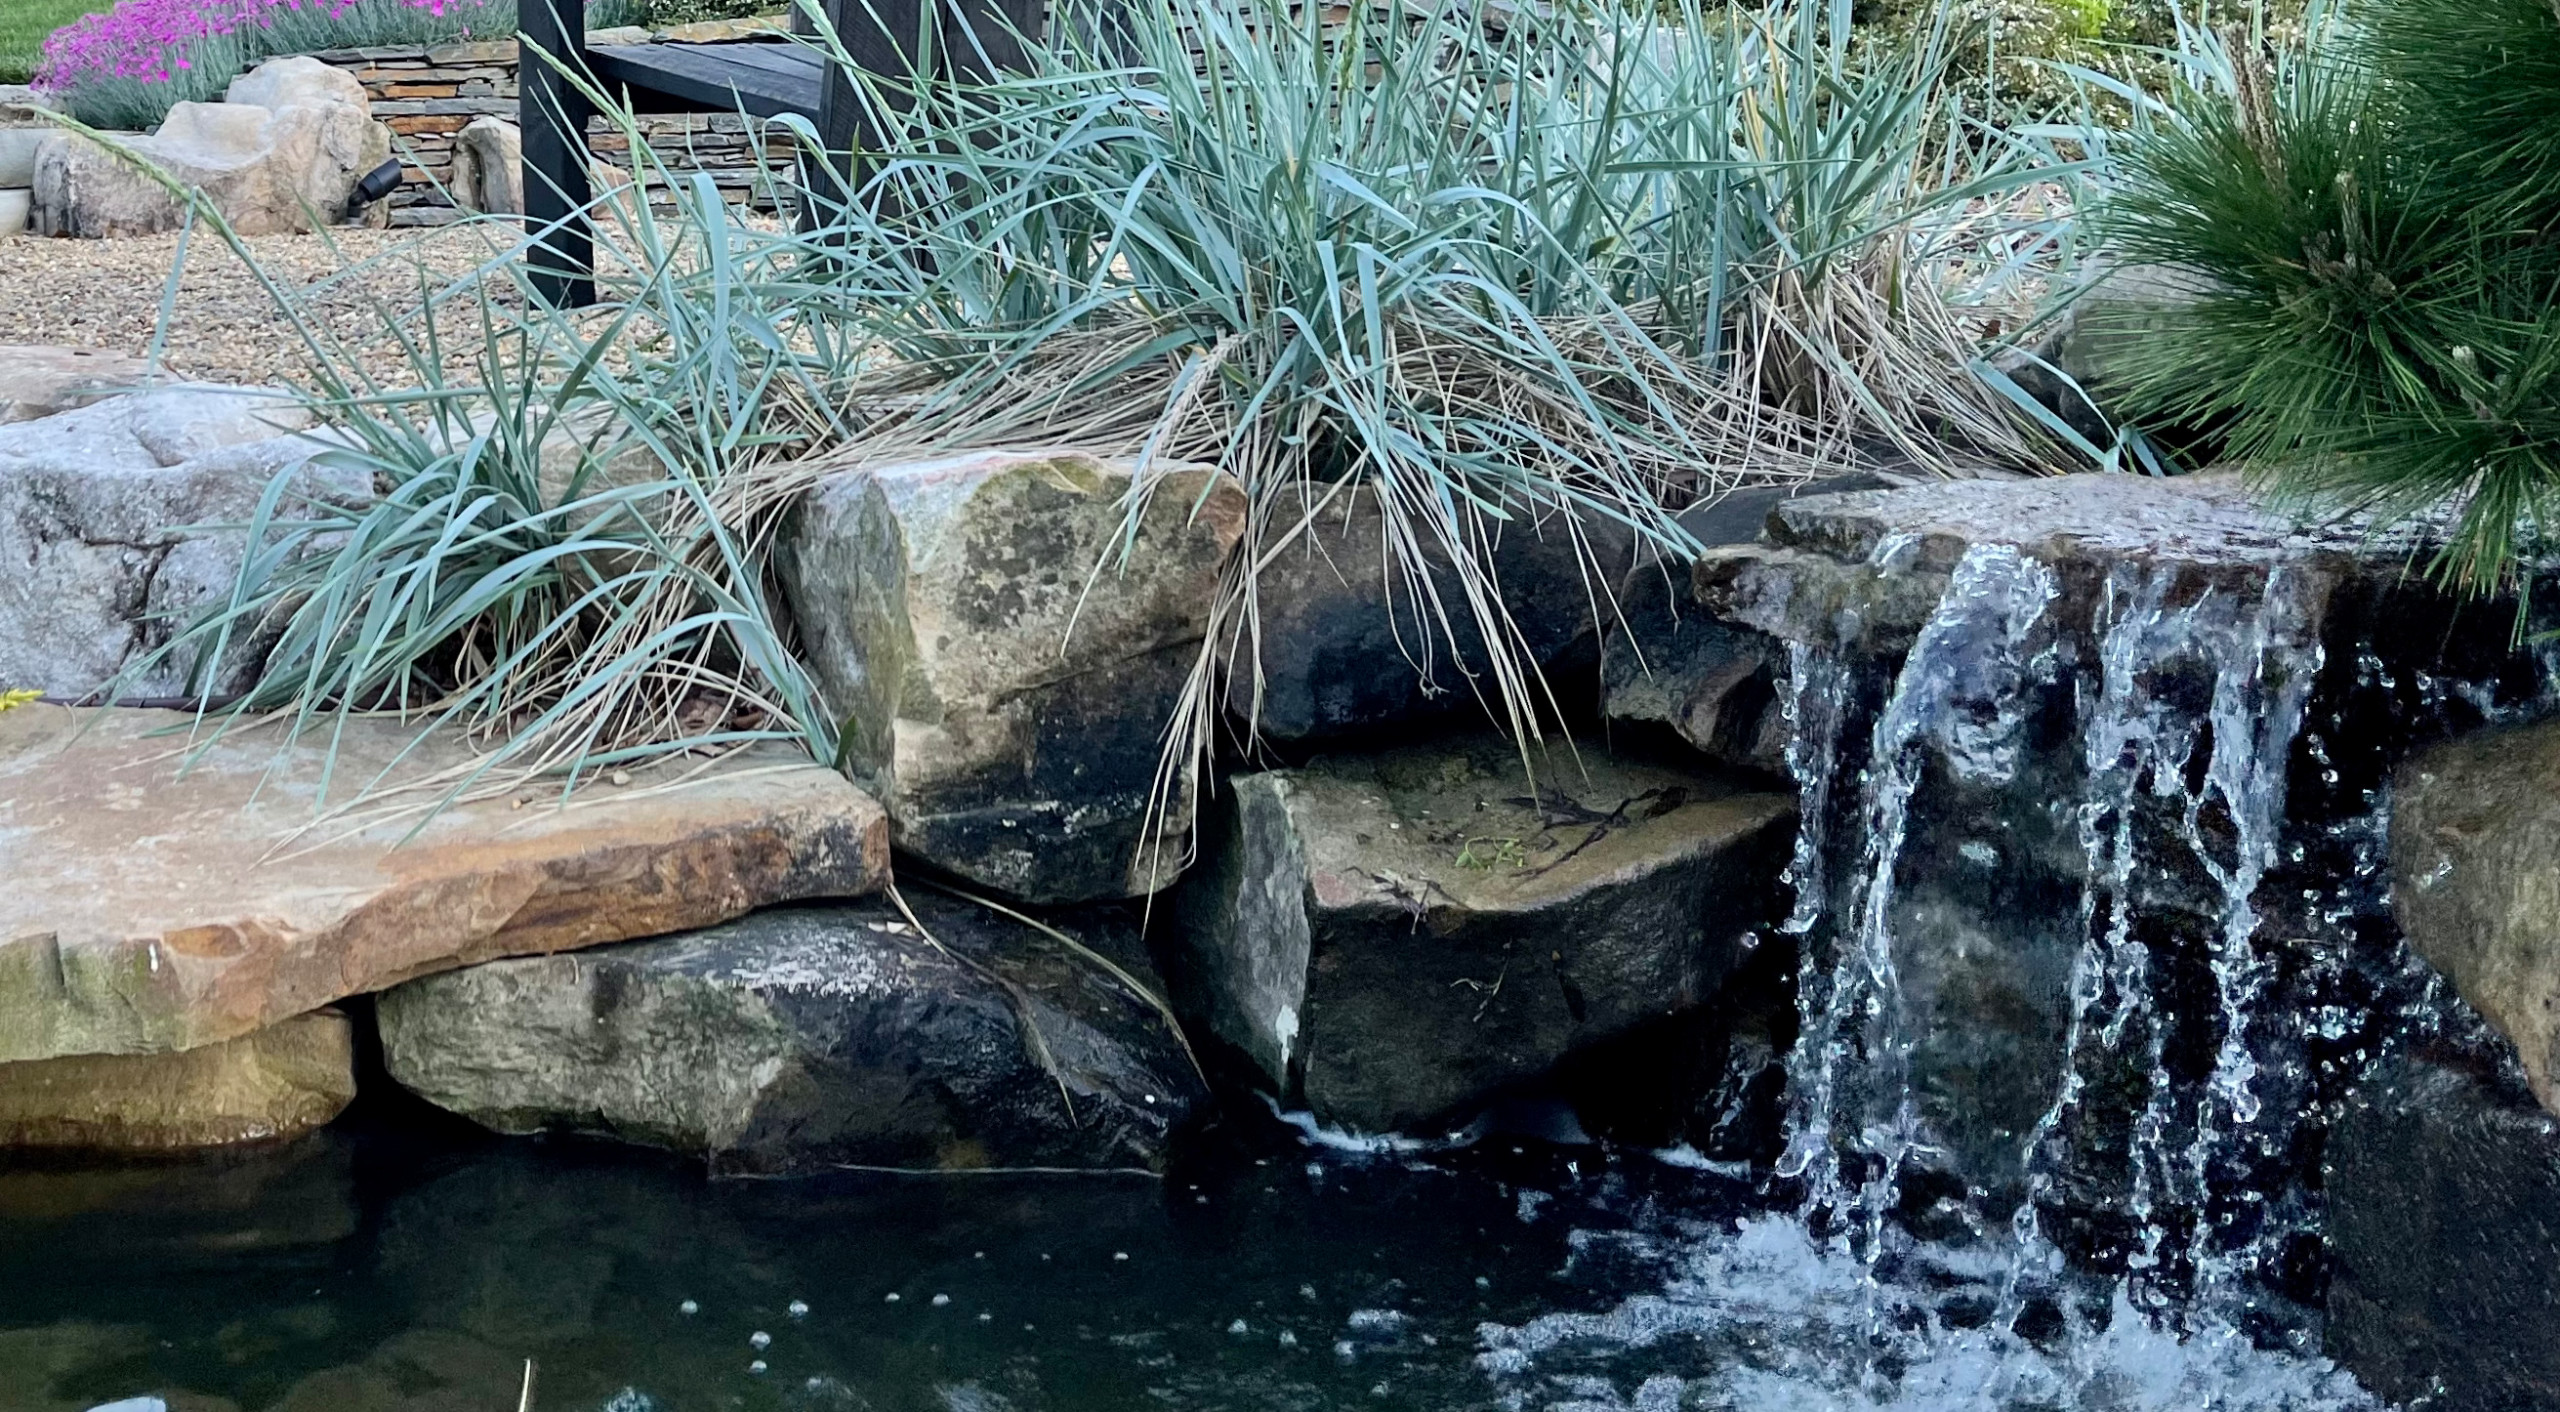 The front waterfall.